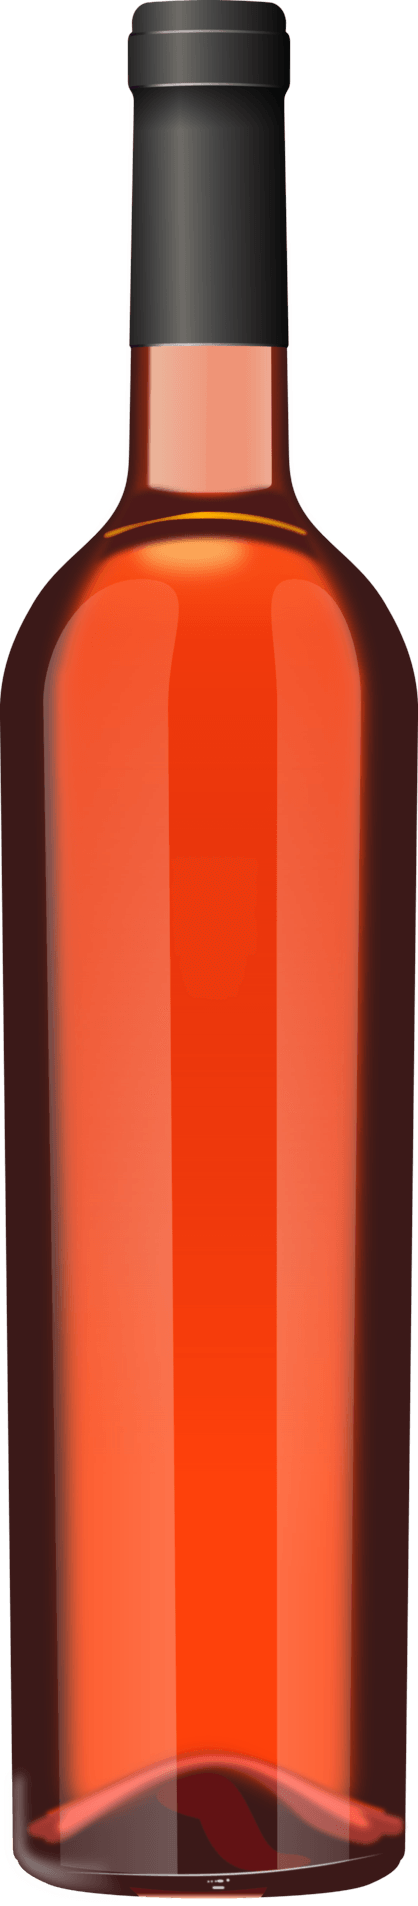 Red Wine Bottle Png Image Download Image Of Bottle PNG Image